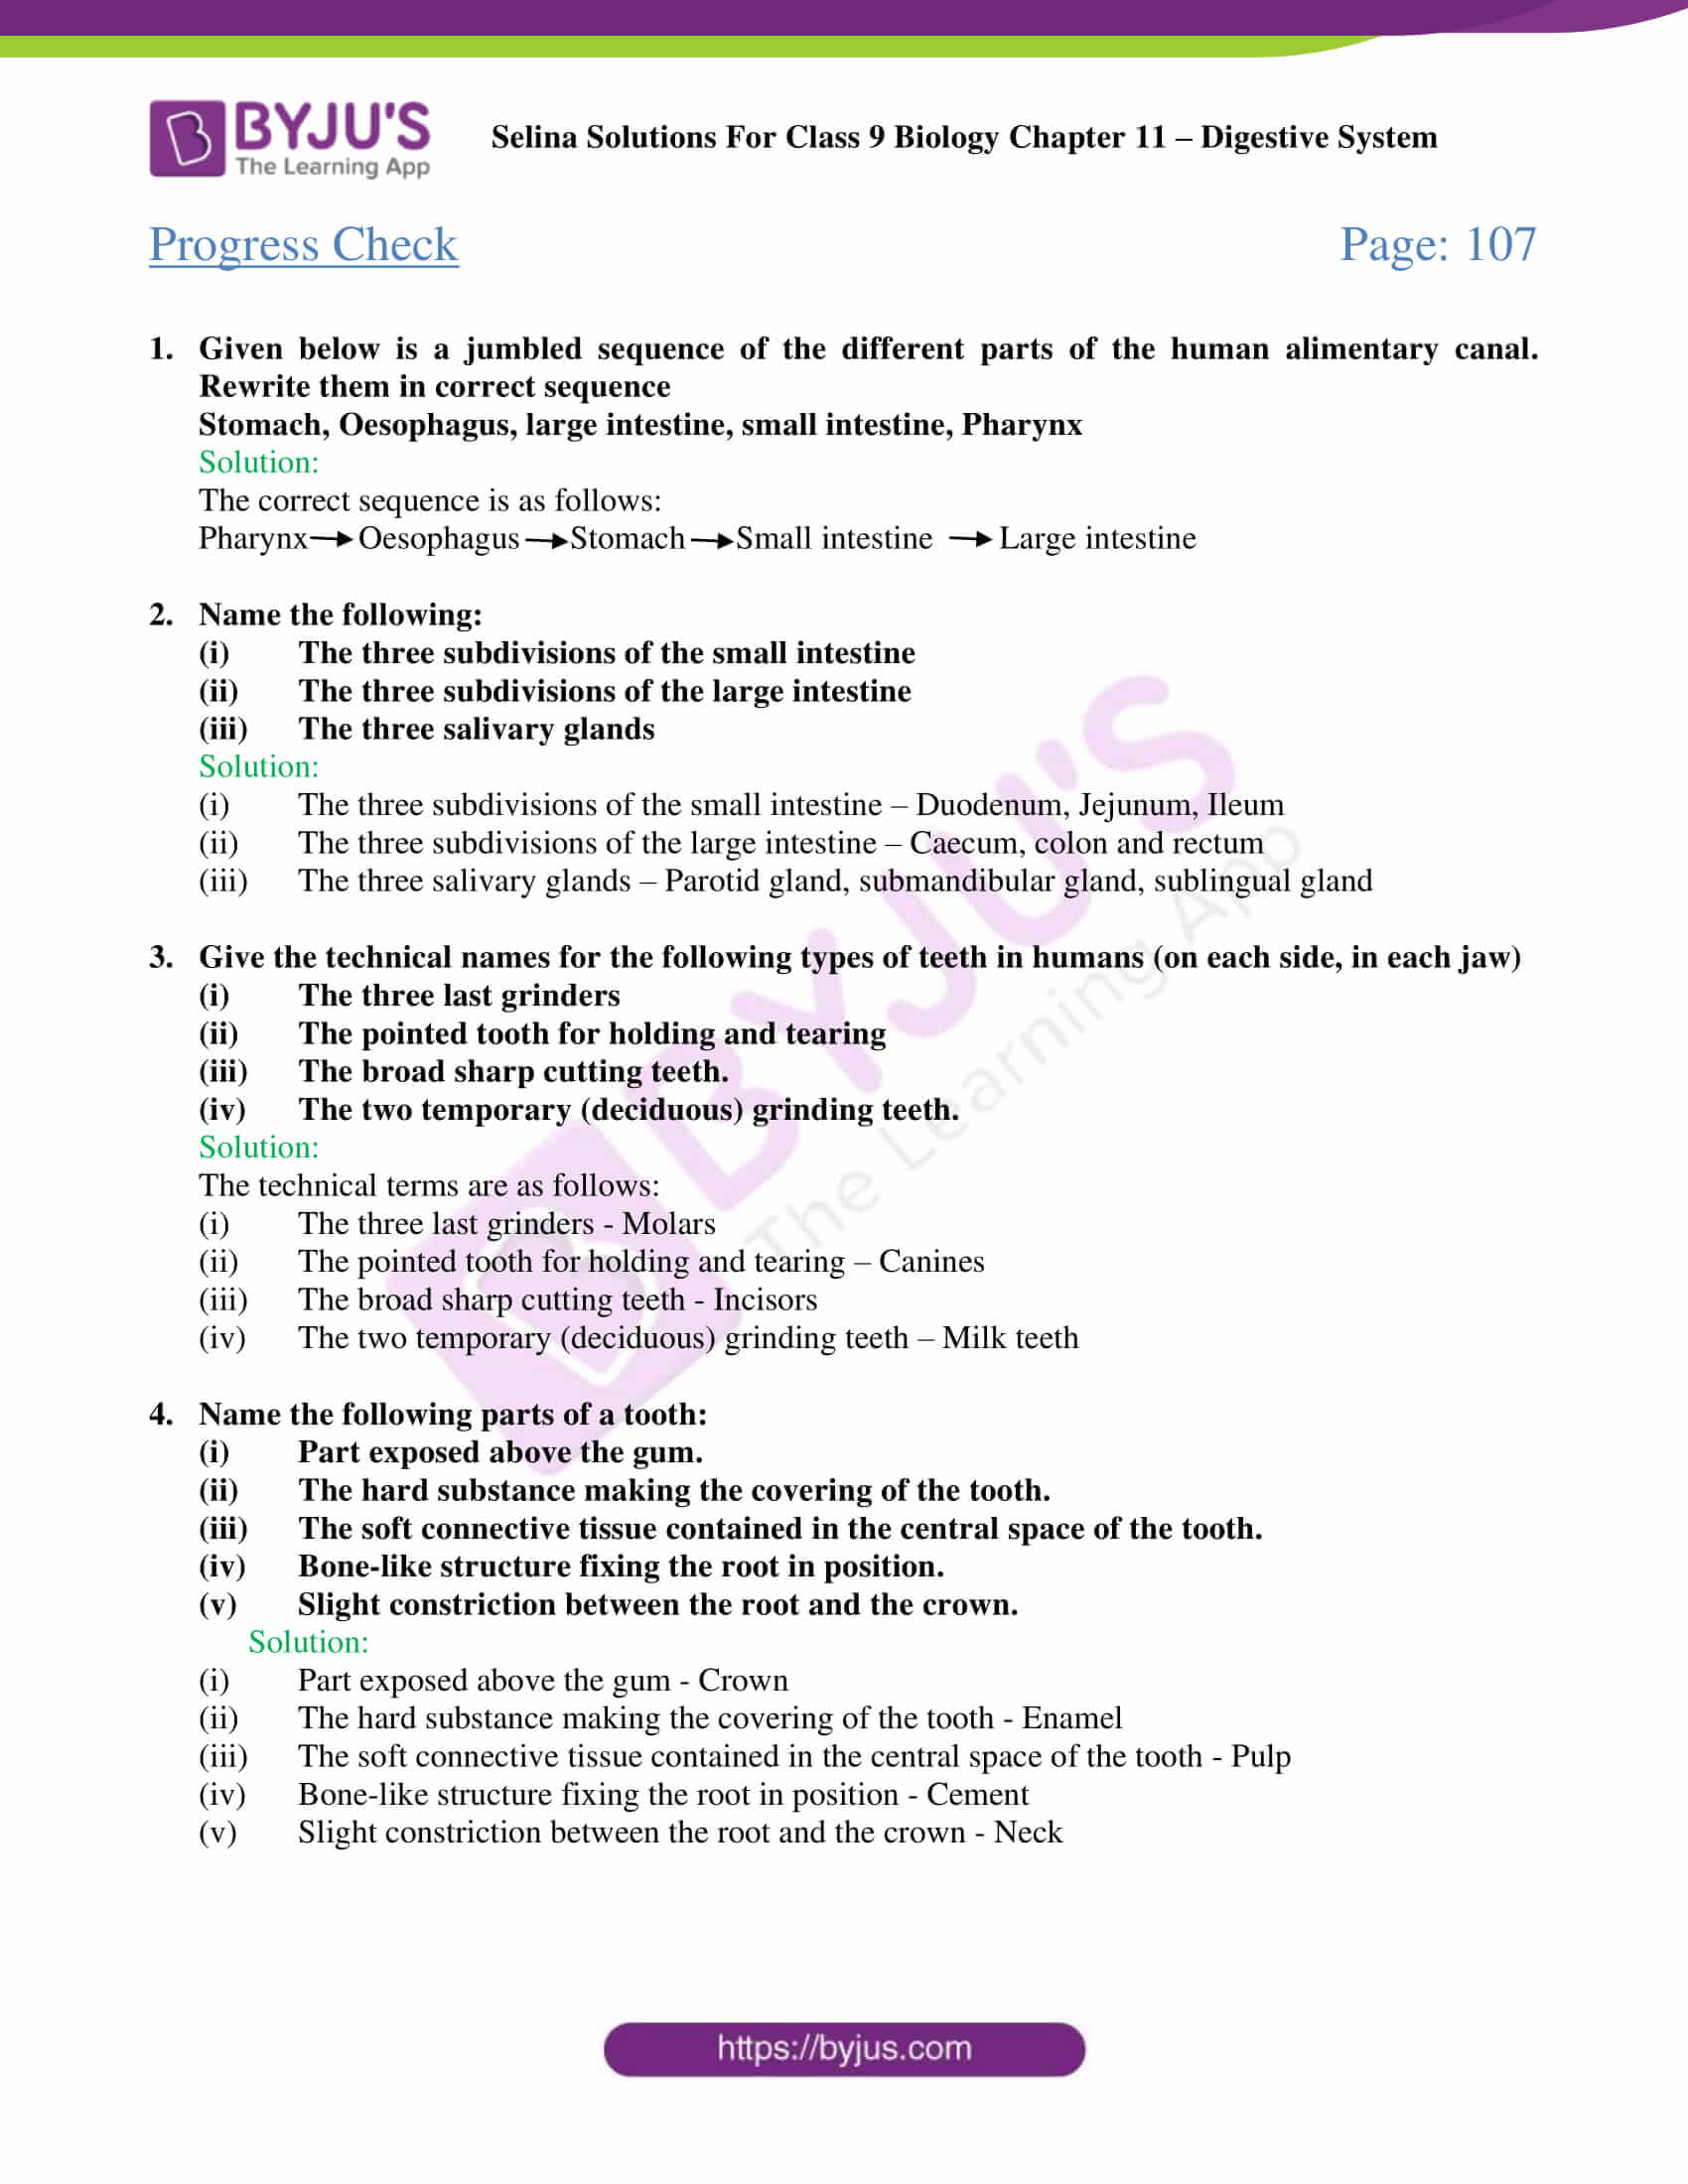 selina Solutions For Class 9 Biology Chapter 11 part 01